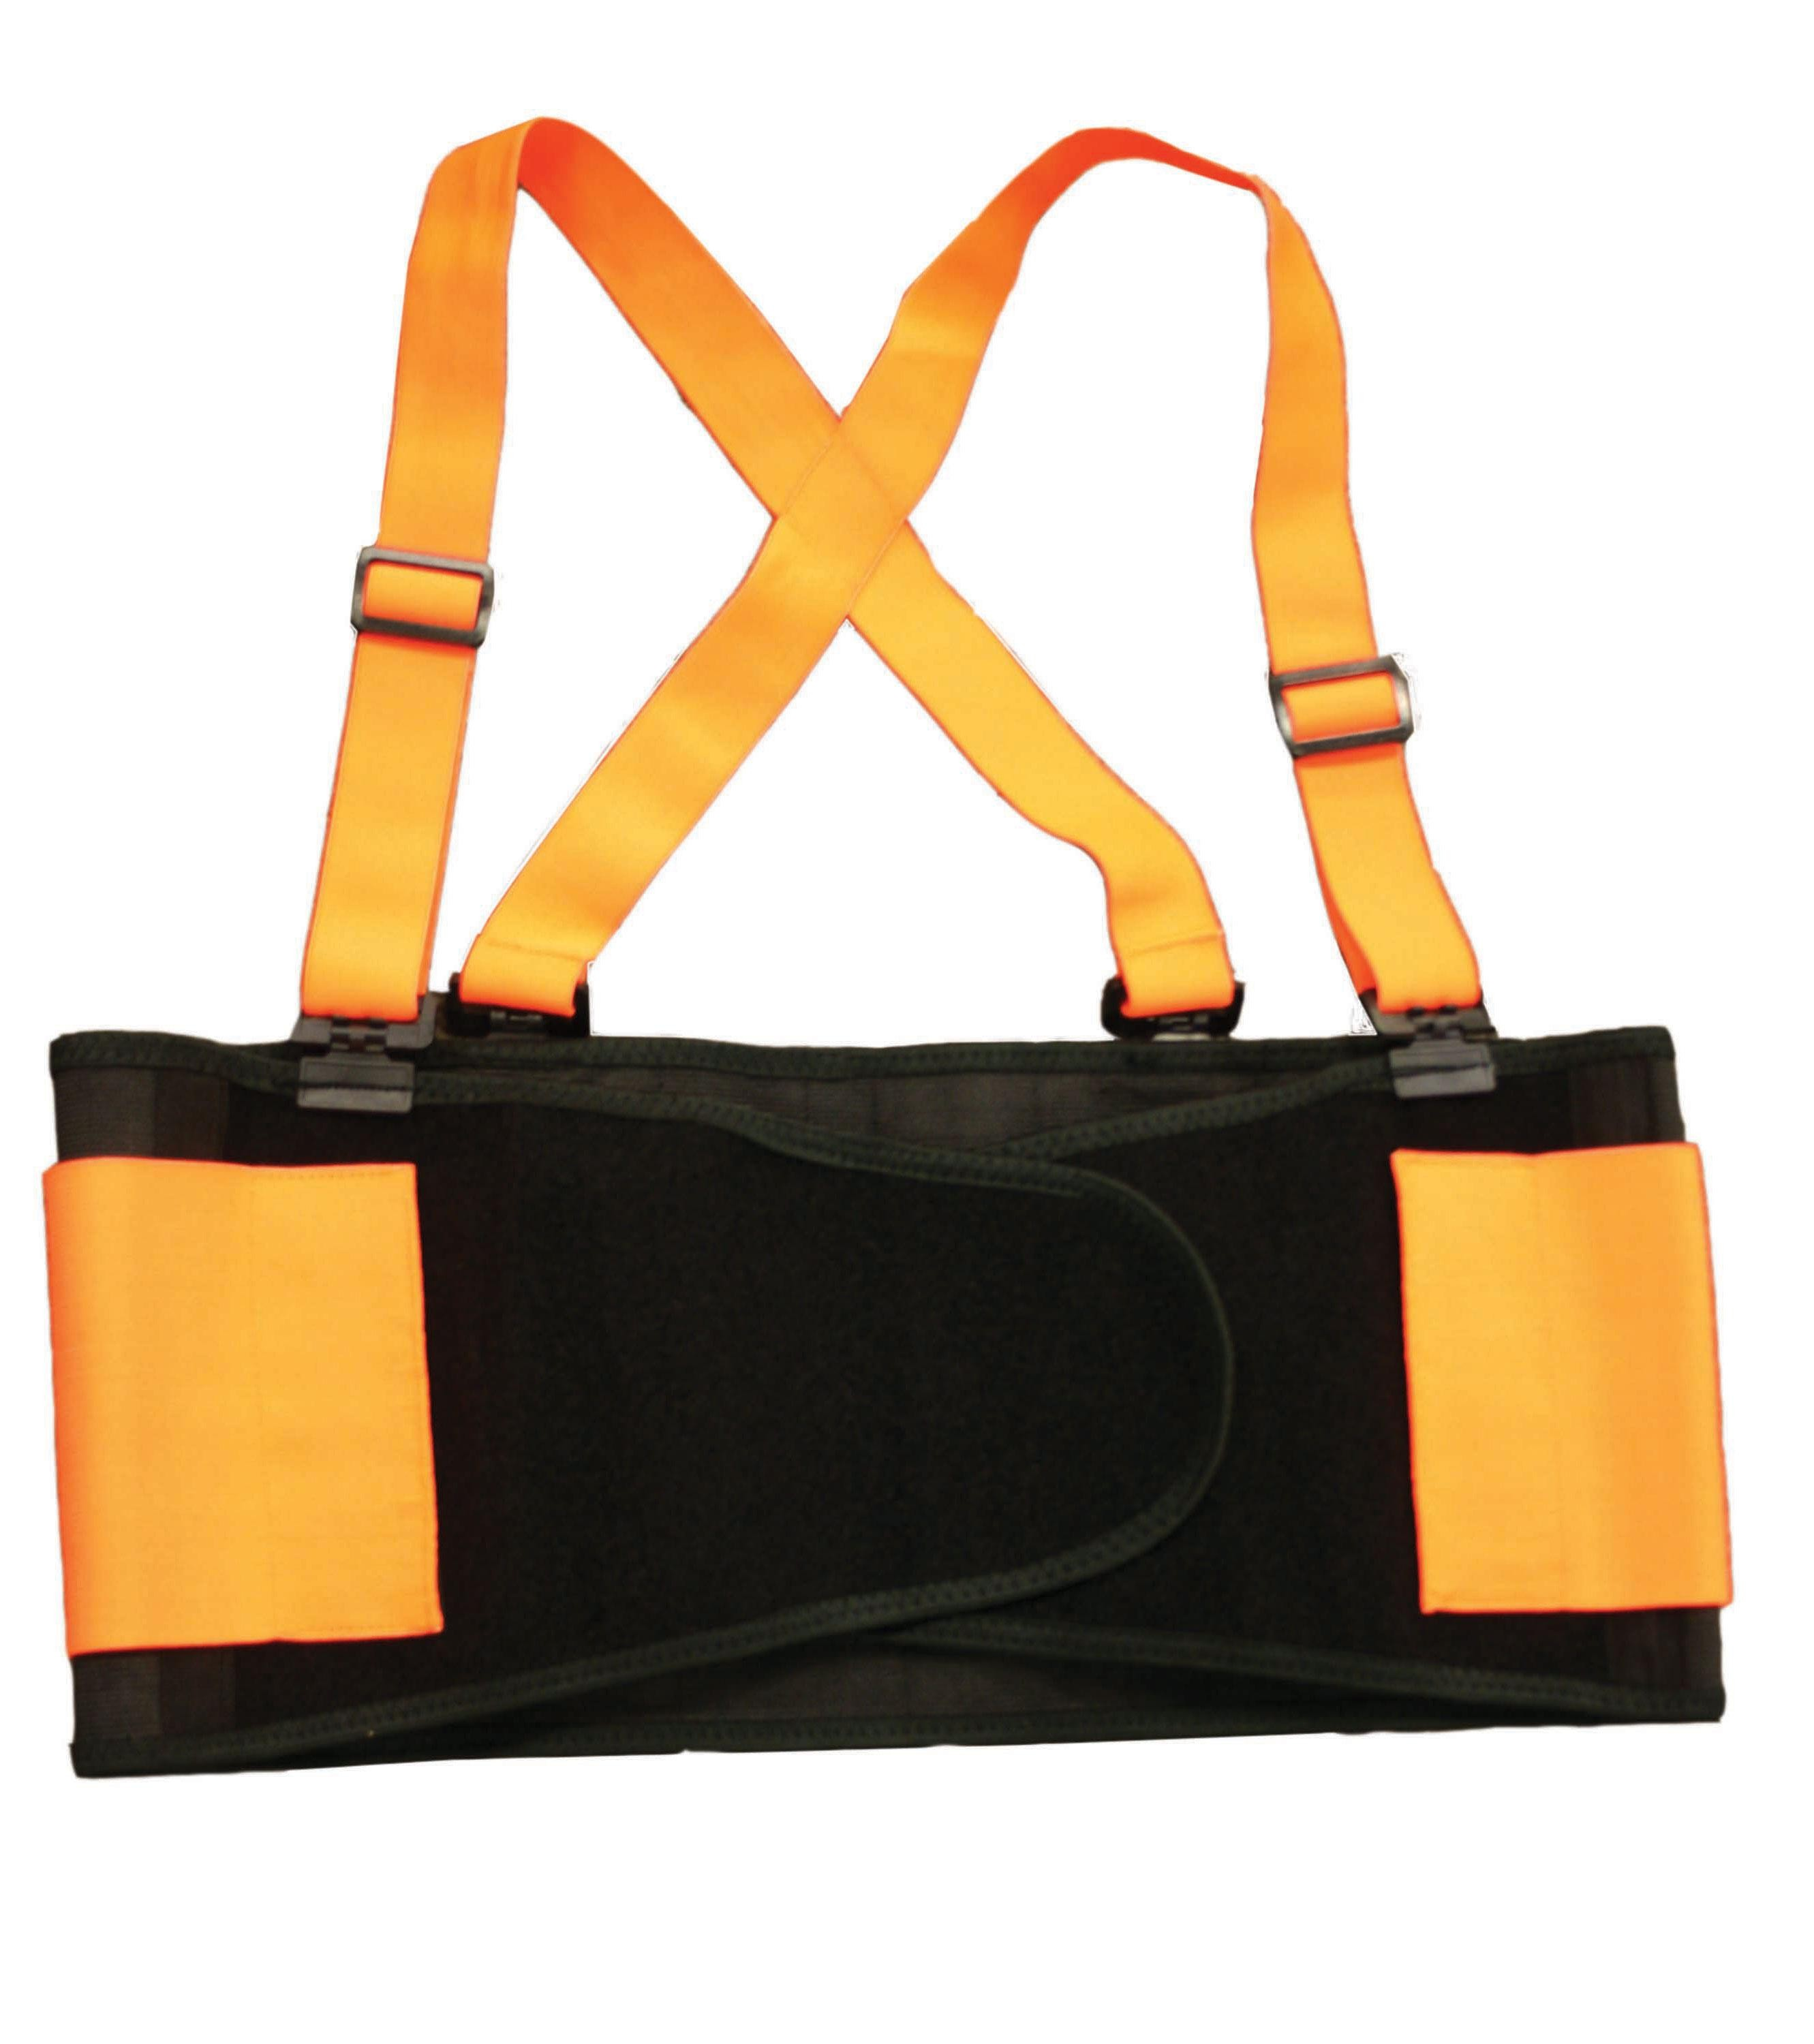 TOTALPACK® Economy Back Support Belt with Suspender - XX-Large Orange/Black, 1 Unit